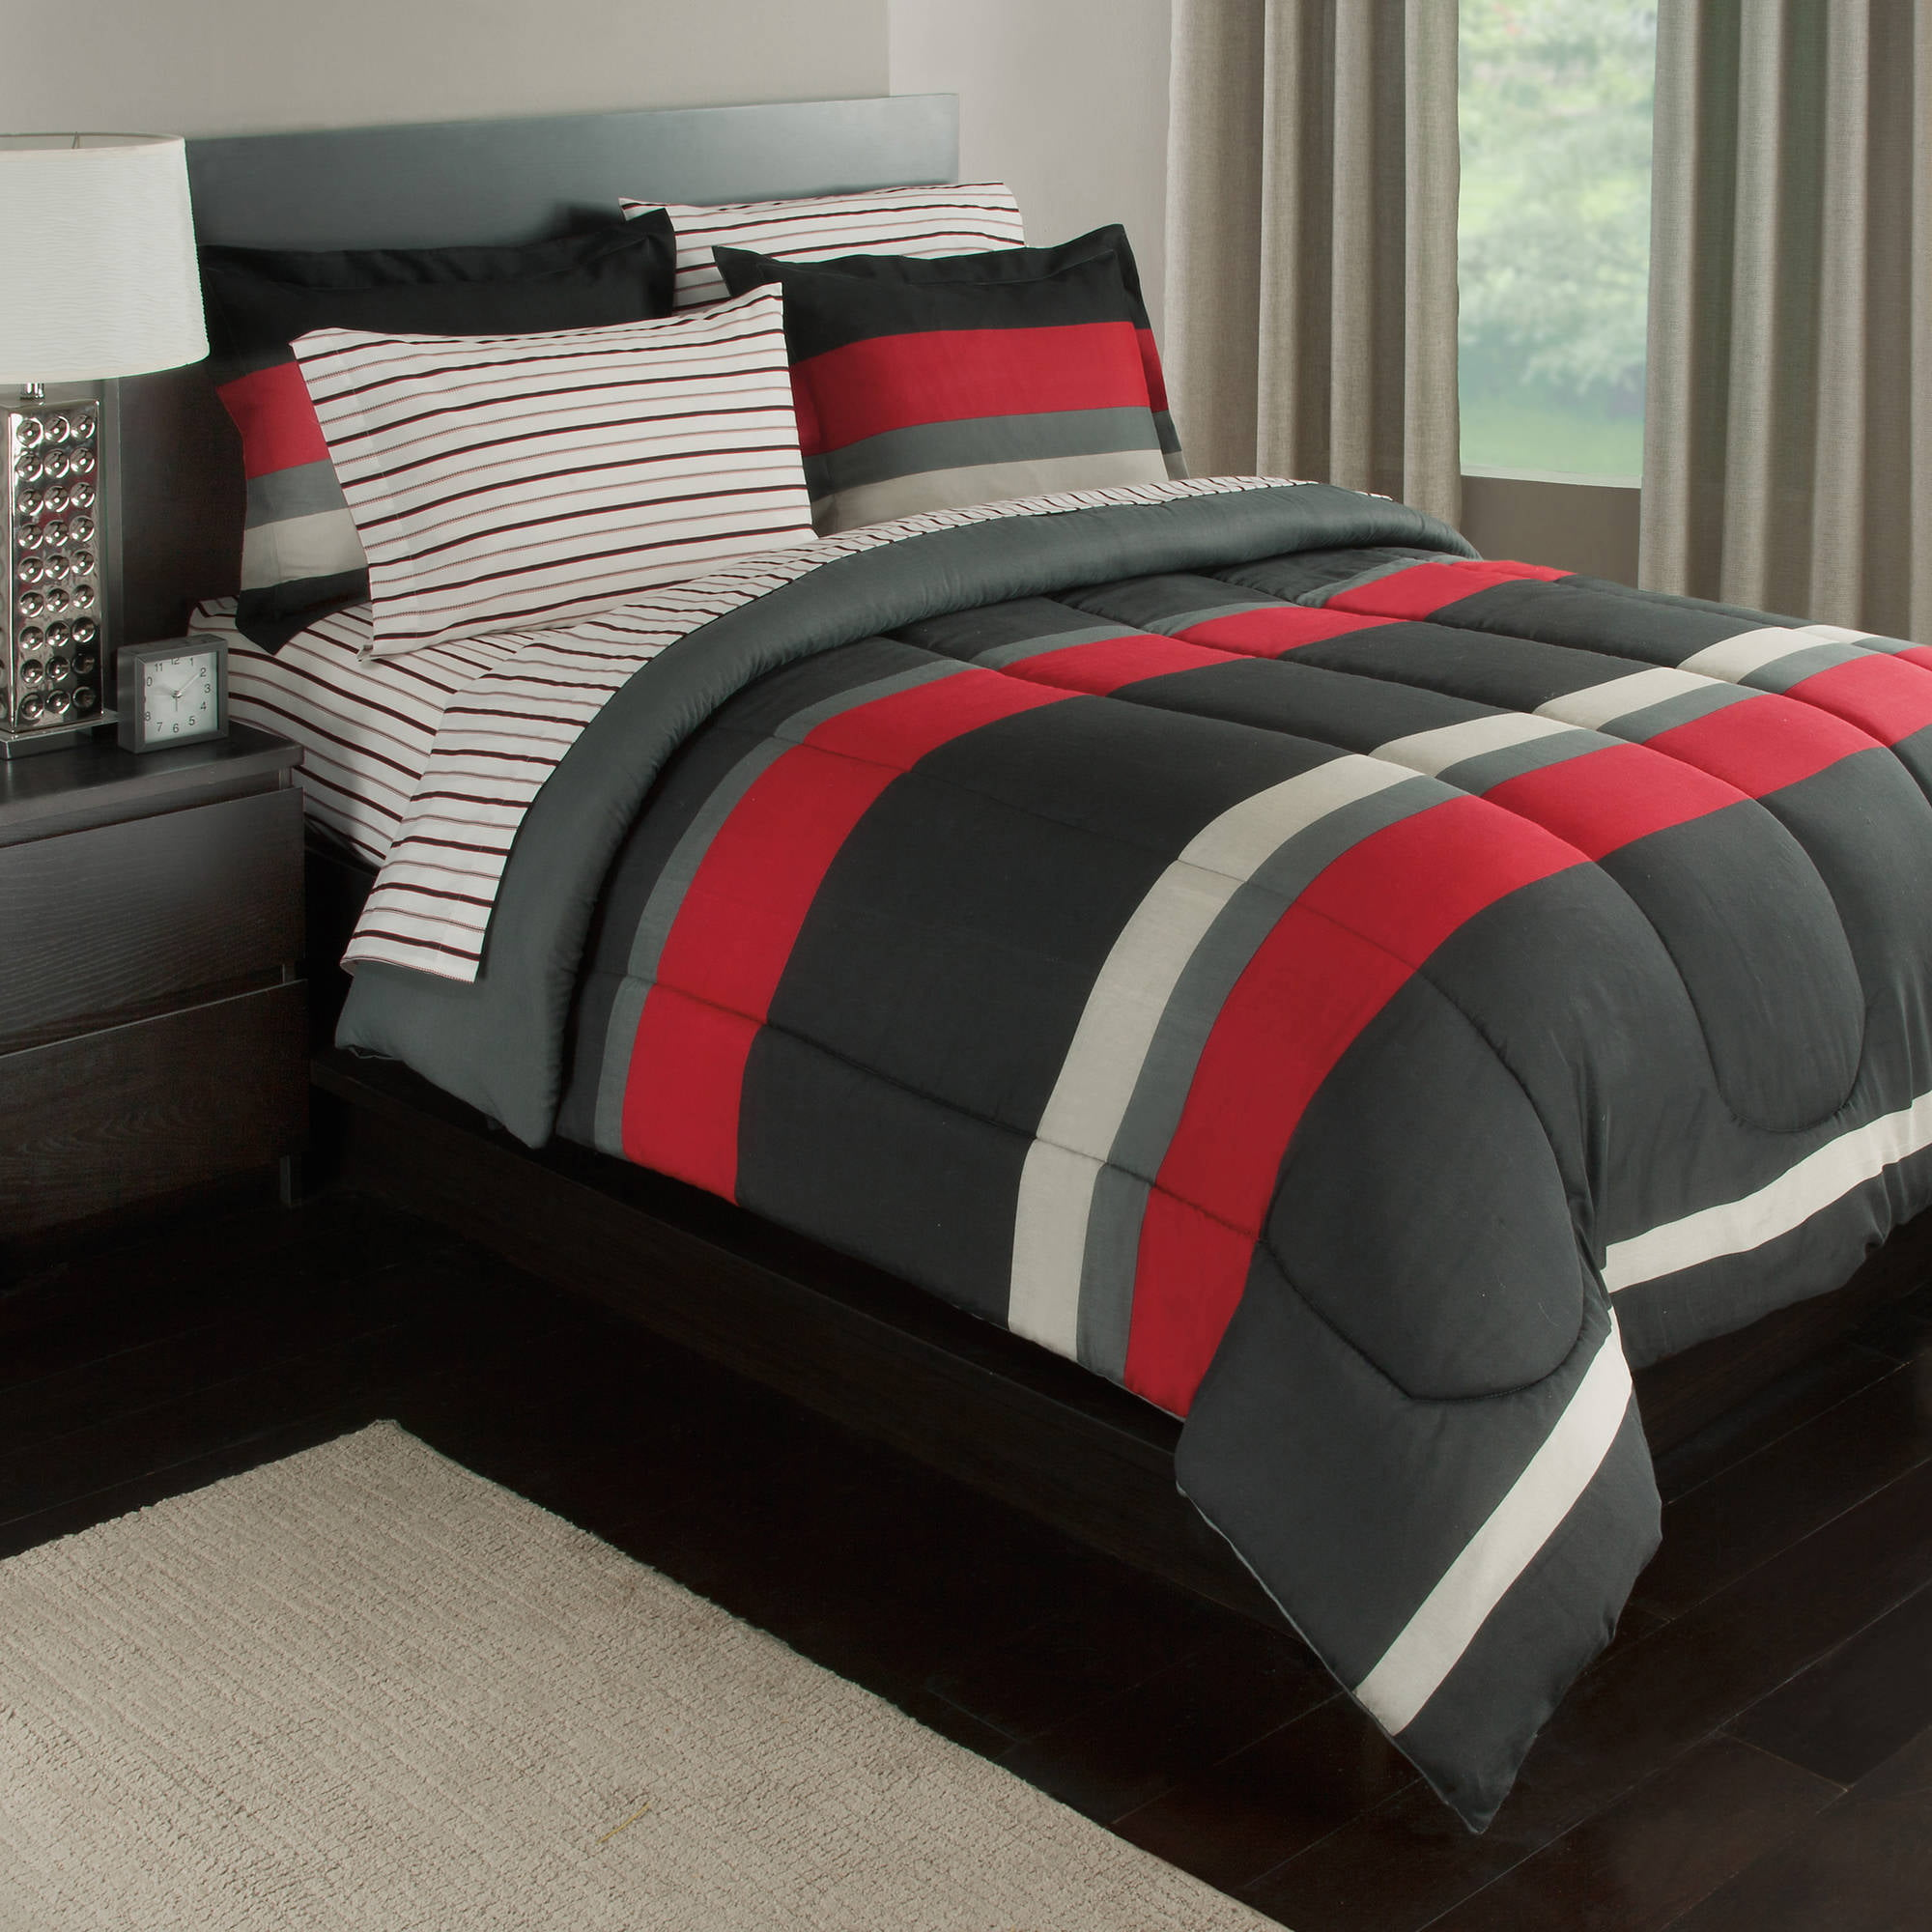 good and ace comforter king black sets furniture bed red frame queen bedroom full